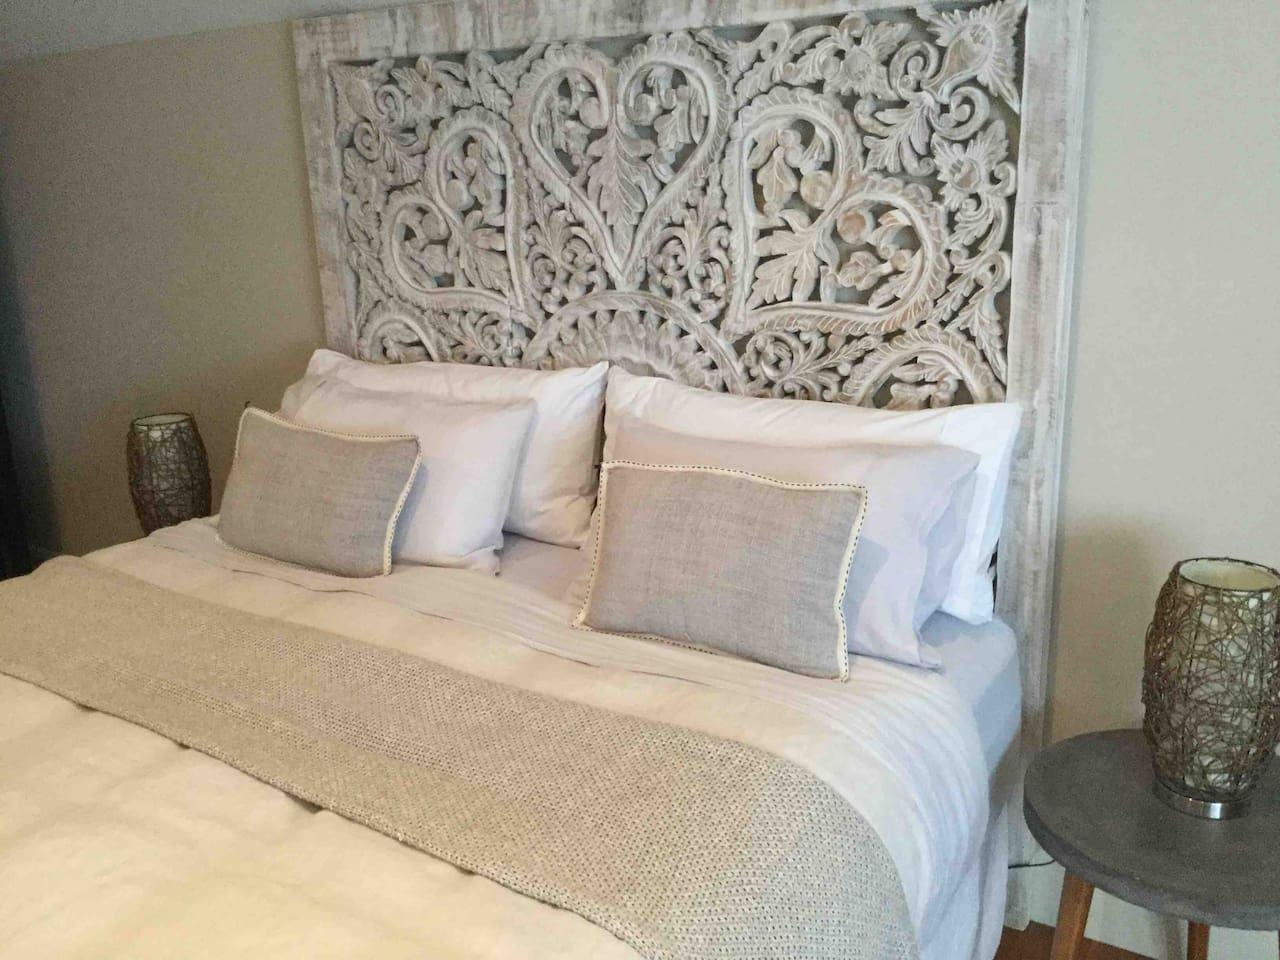 King size super luxurious bed . French linen sheets decadent mattress topper and fluffy light duvet . In a huge bedroom with en-suite drenched in northern light .